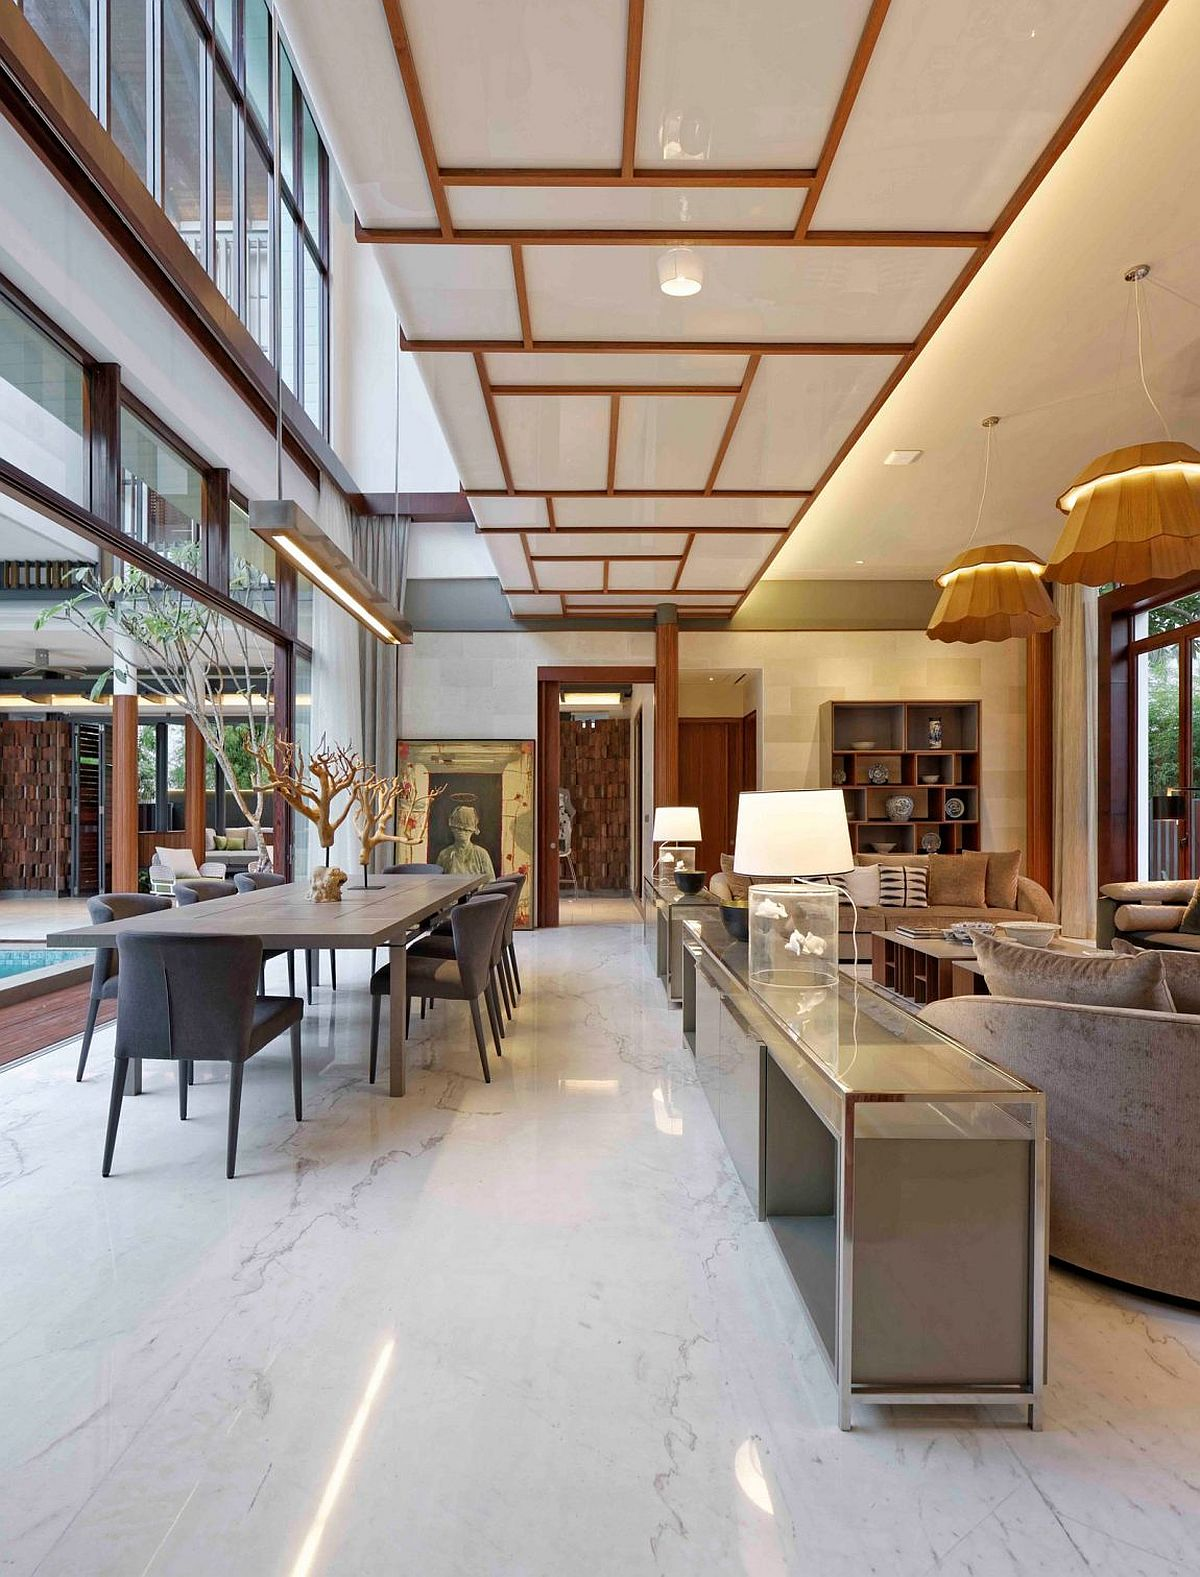 Ceiling panels add to the traditional style of the pavilion living space